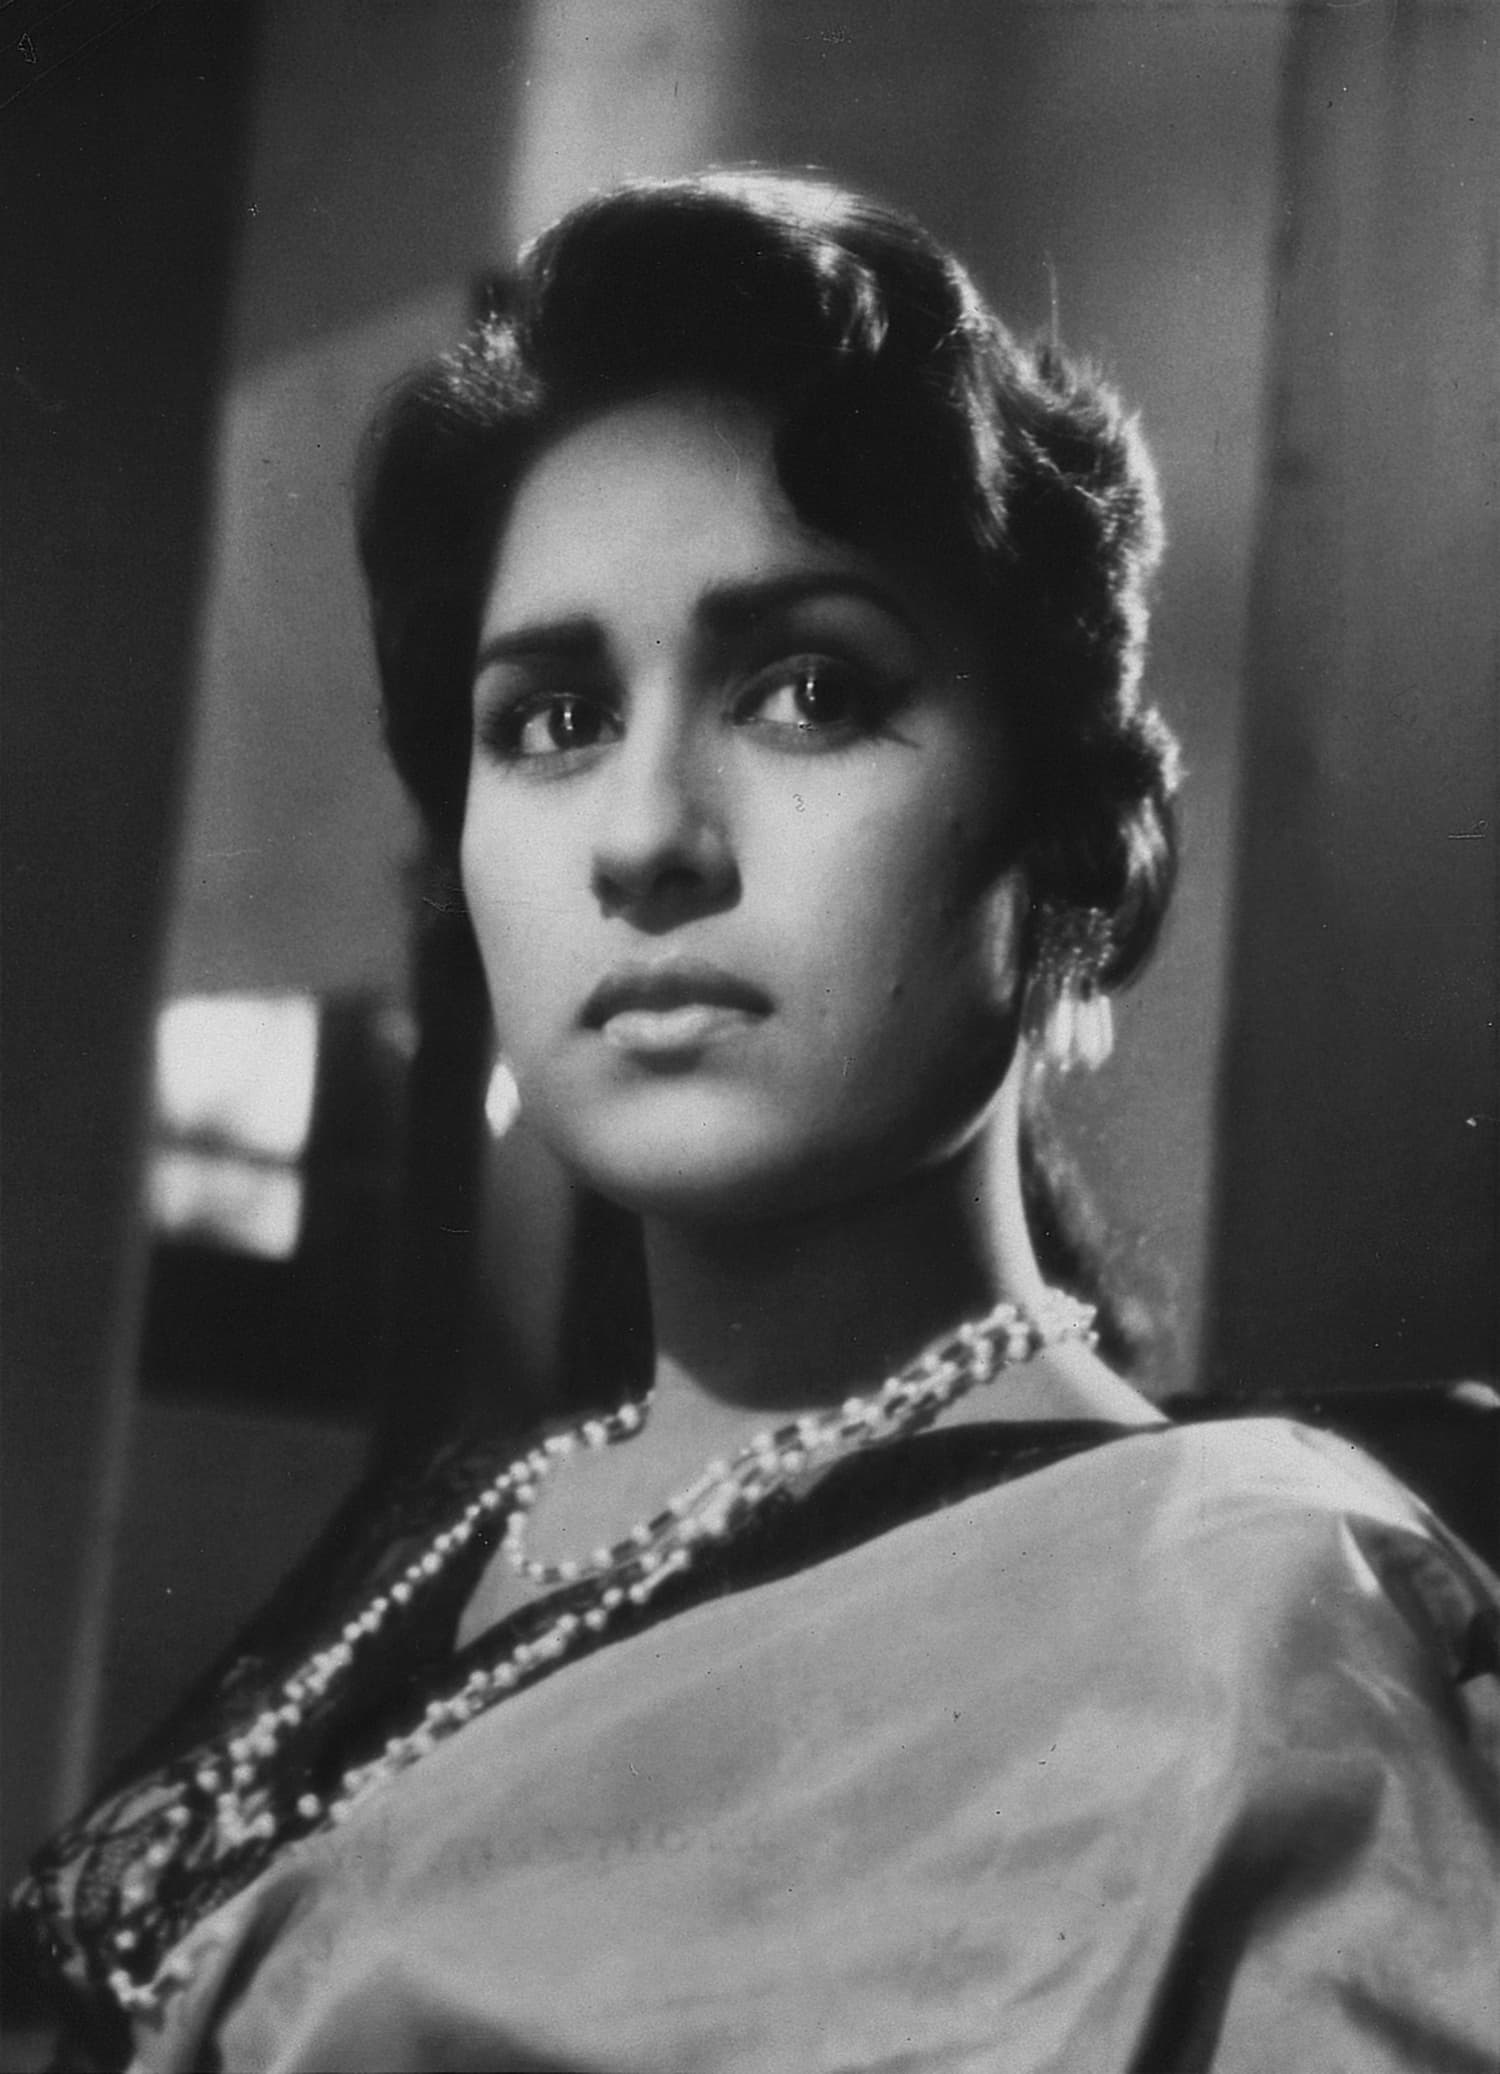 Shamim Ara retired from acting in the early '70s, and transitioned to film direction and production ─ White Star/File